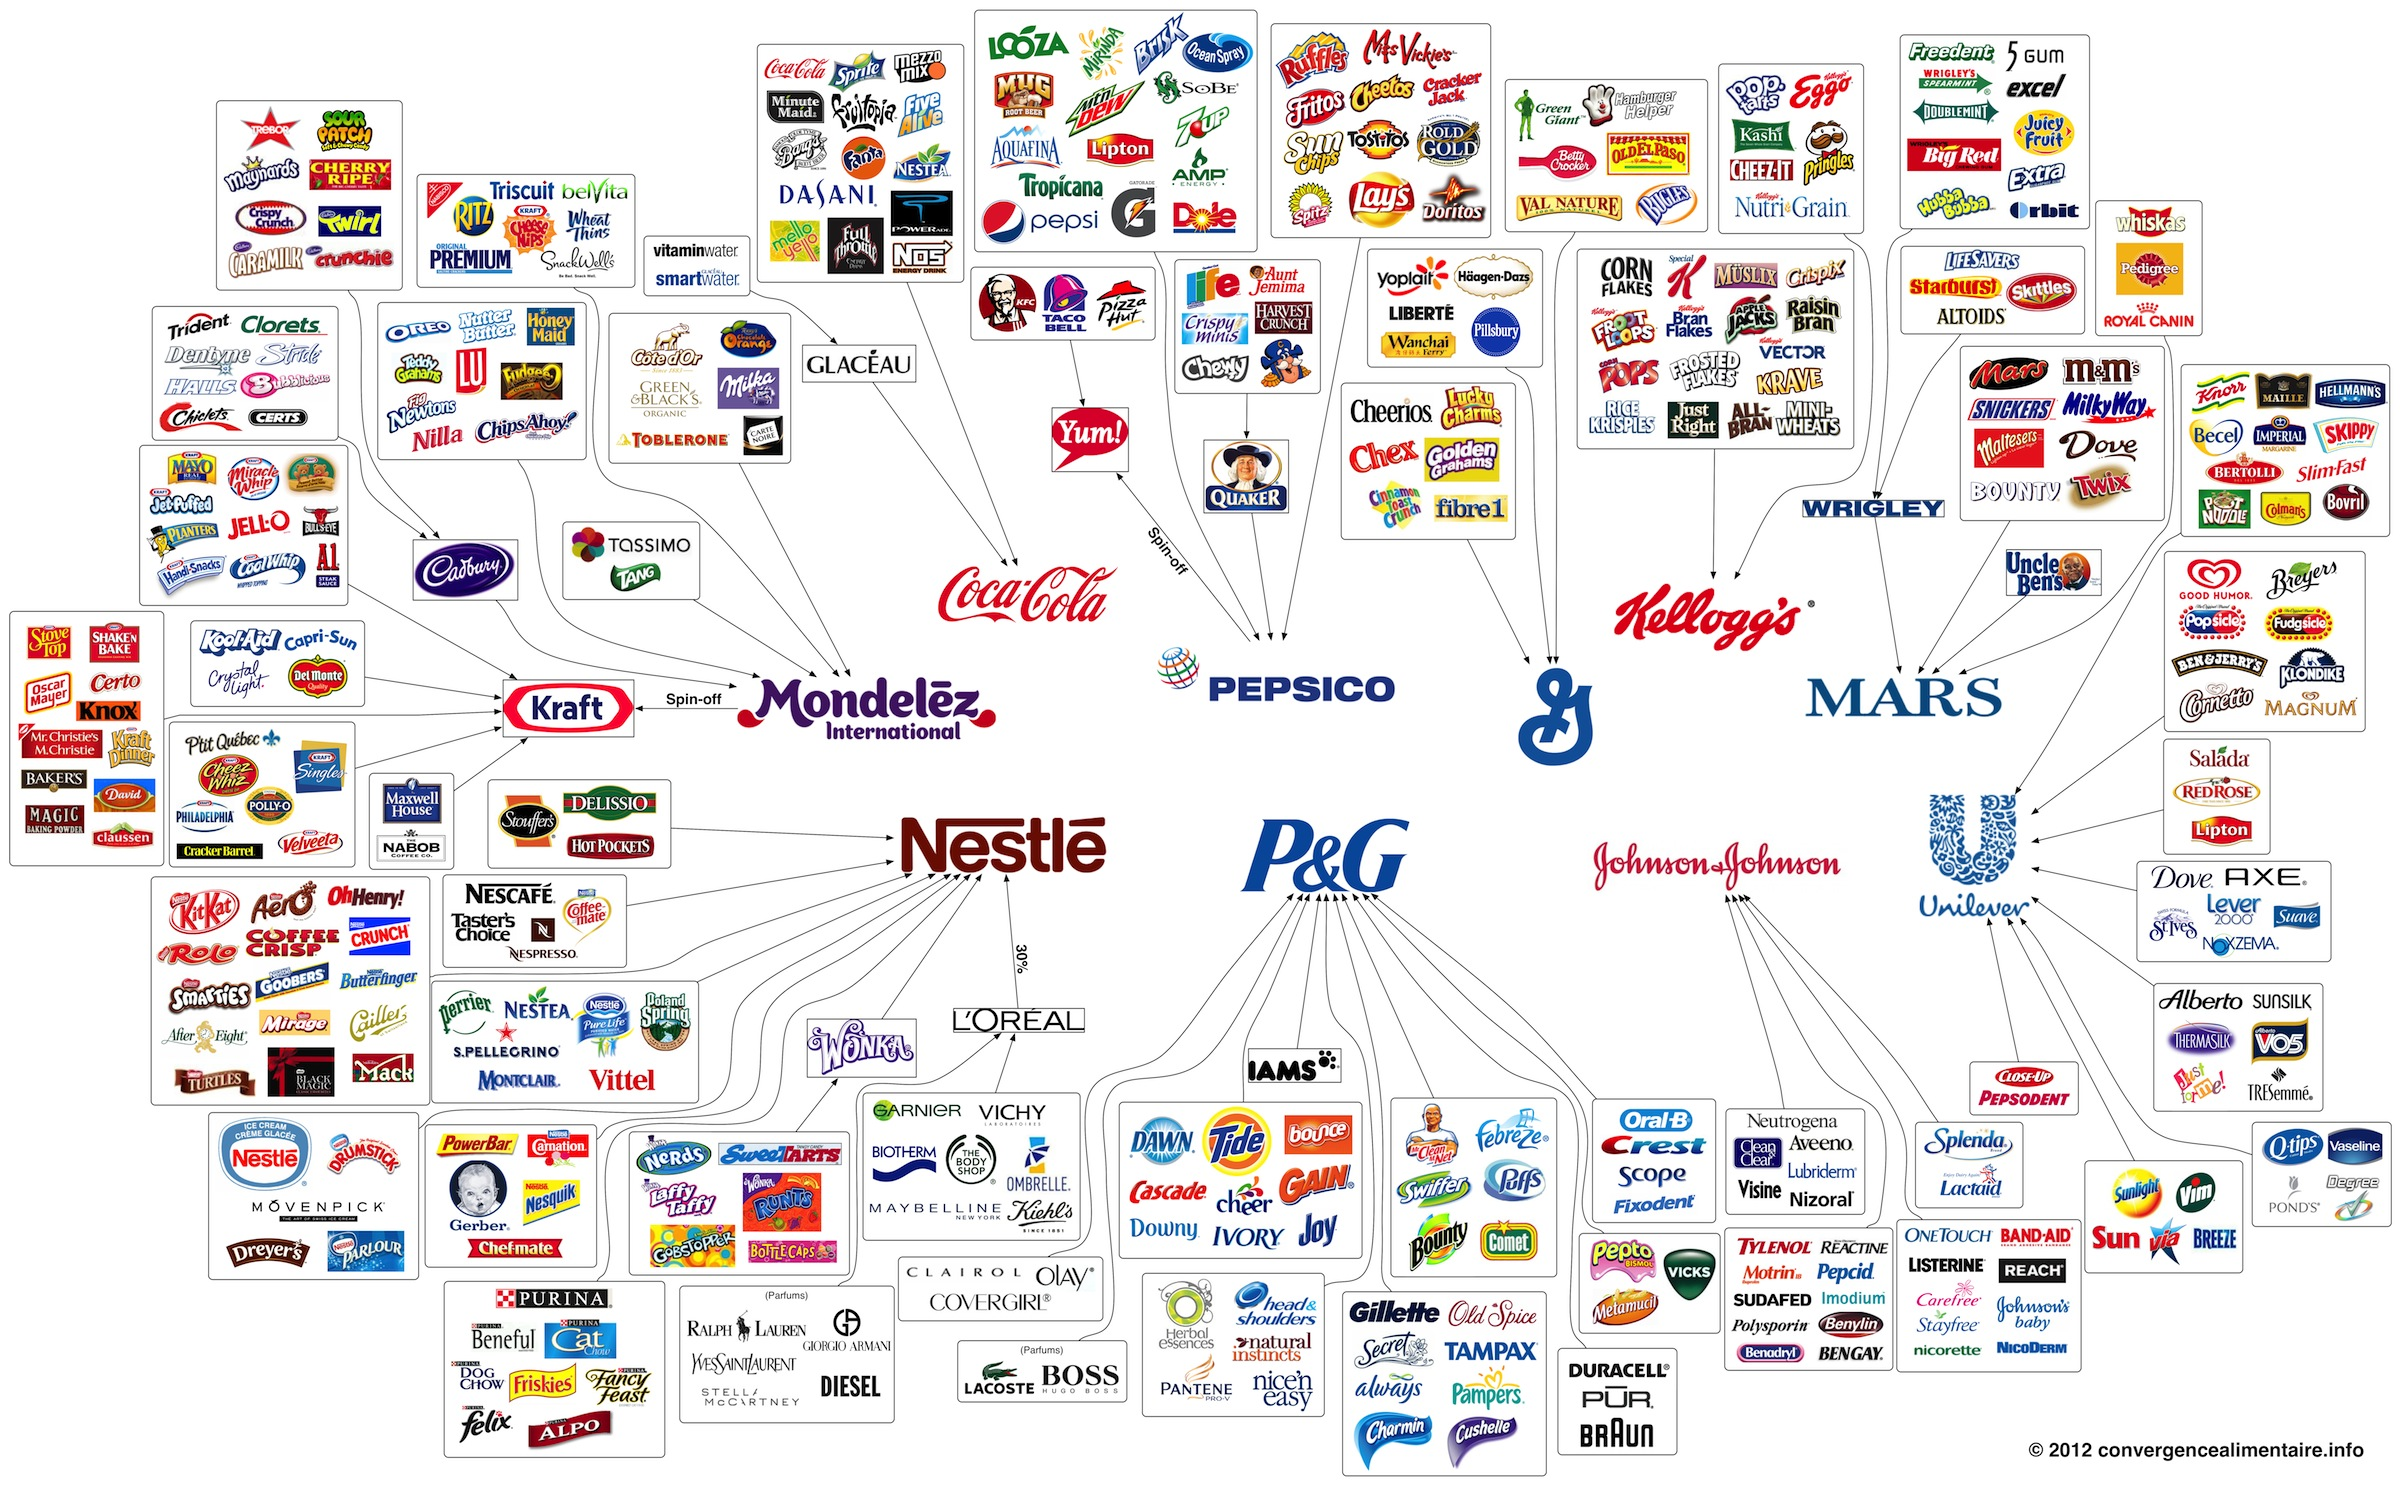 These 10 Companies Control Enormous Number Of Consumer Brands [